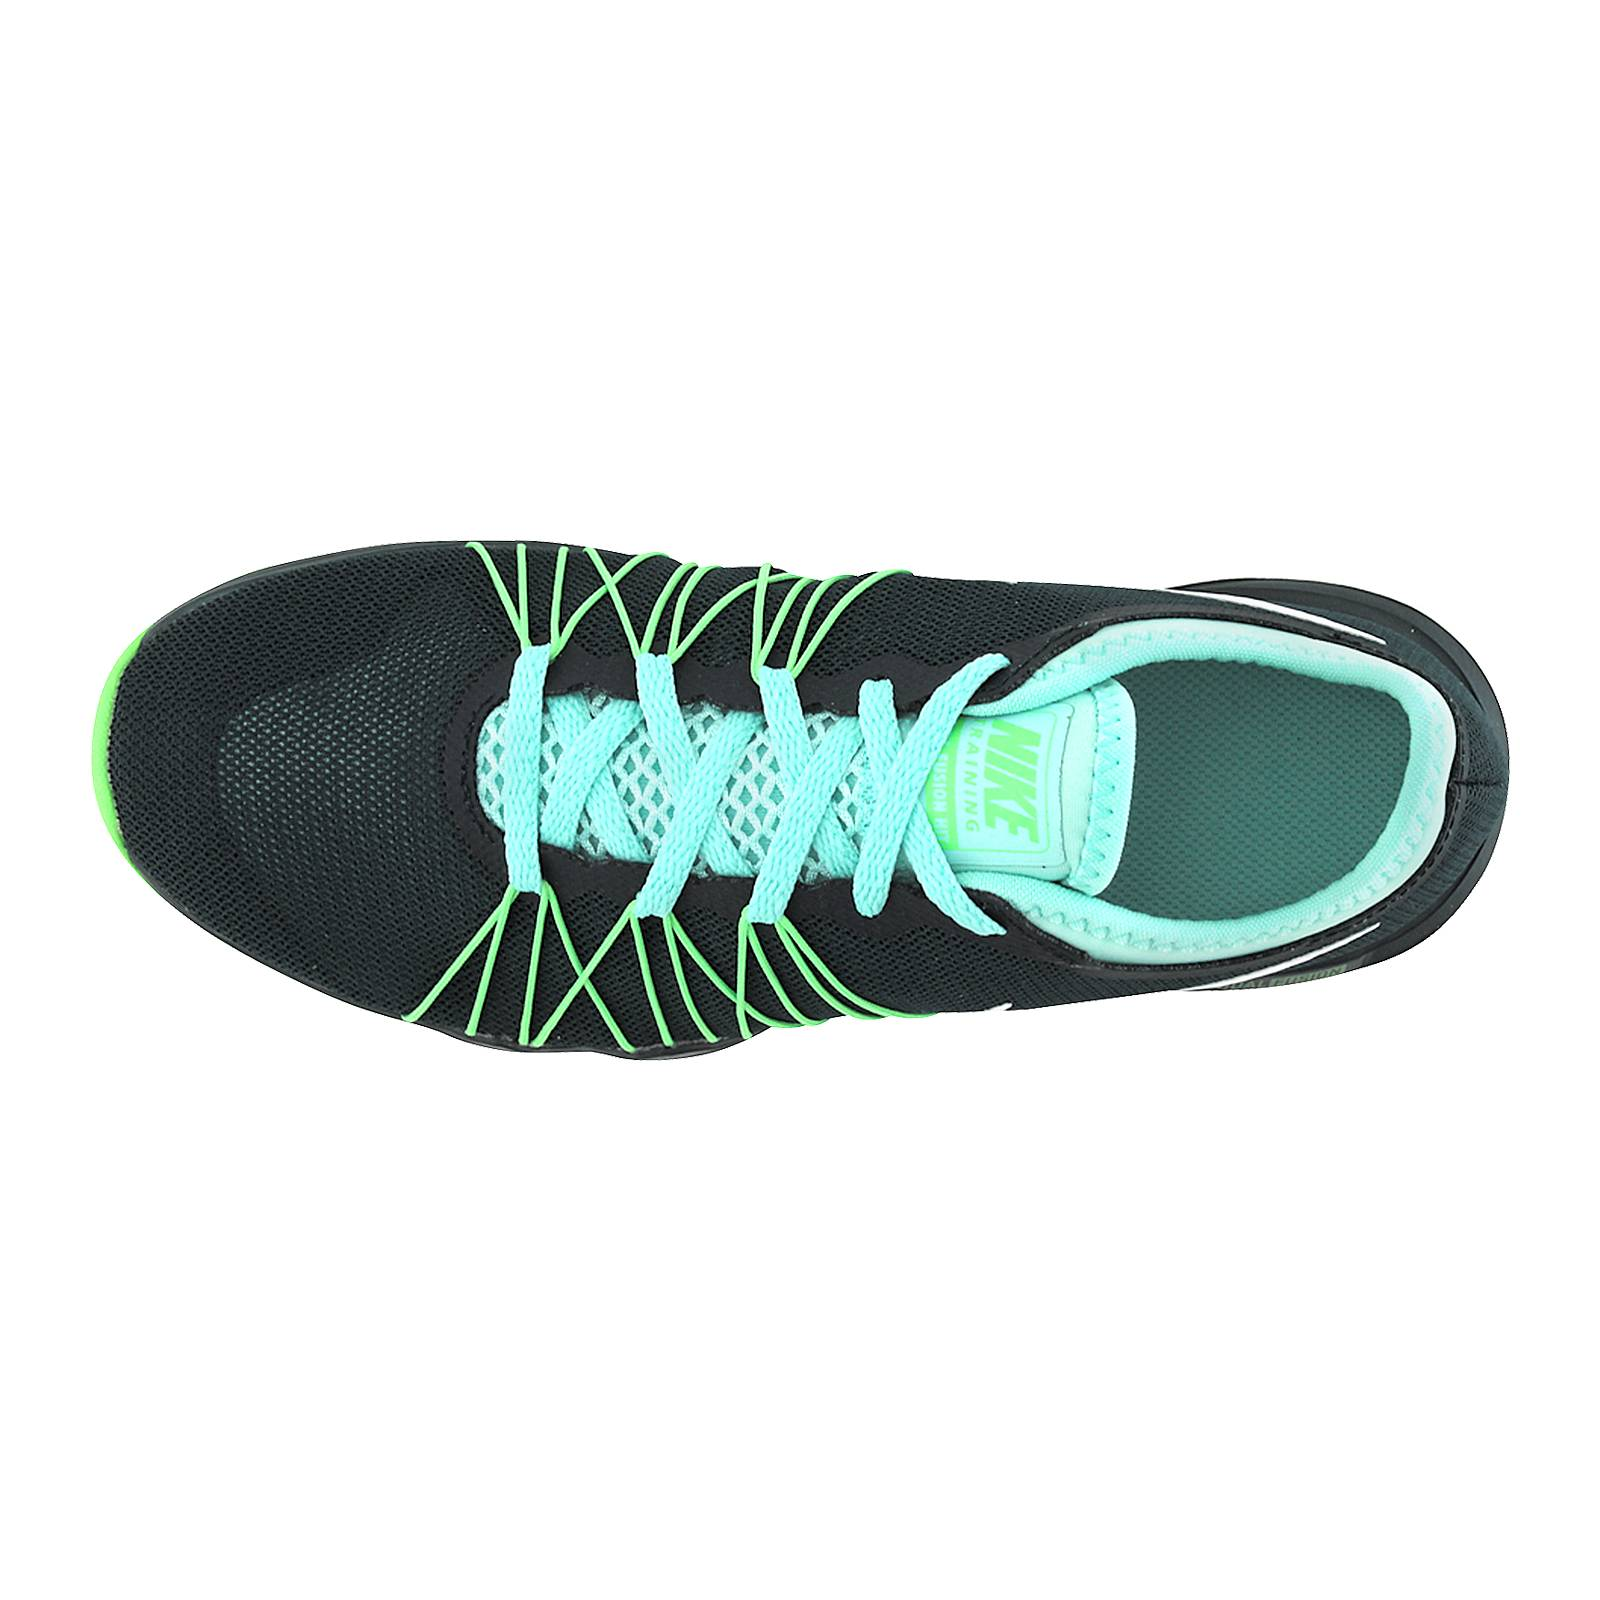 Dual Fusion TR Hit - Nike Women s athletic shoes made of fabric ... aaa169032